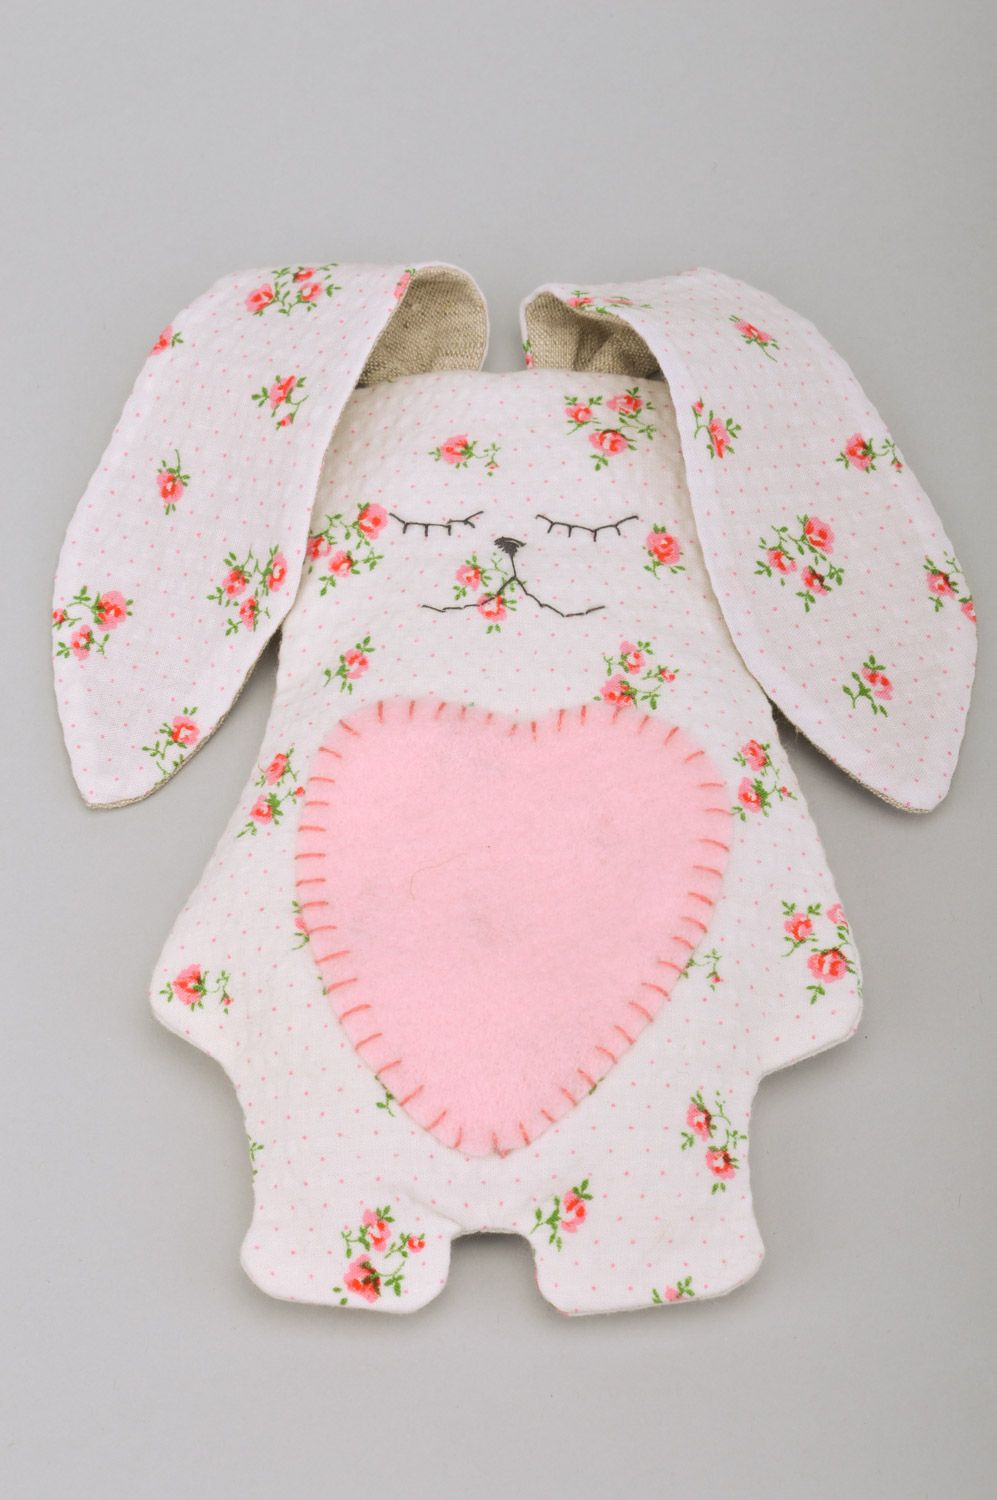 Handmade soft toy rabbit with long ears sewn of cotton fabric with floral print photo 1